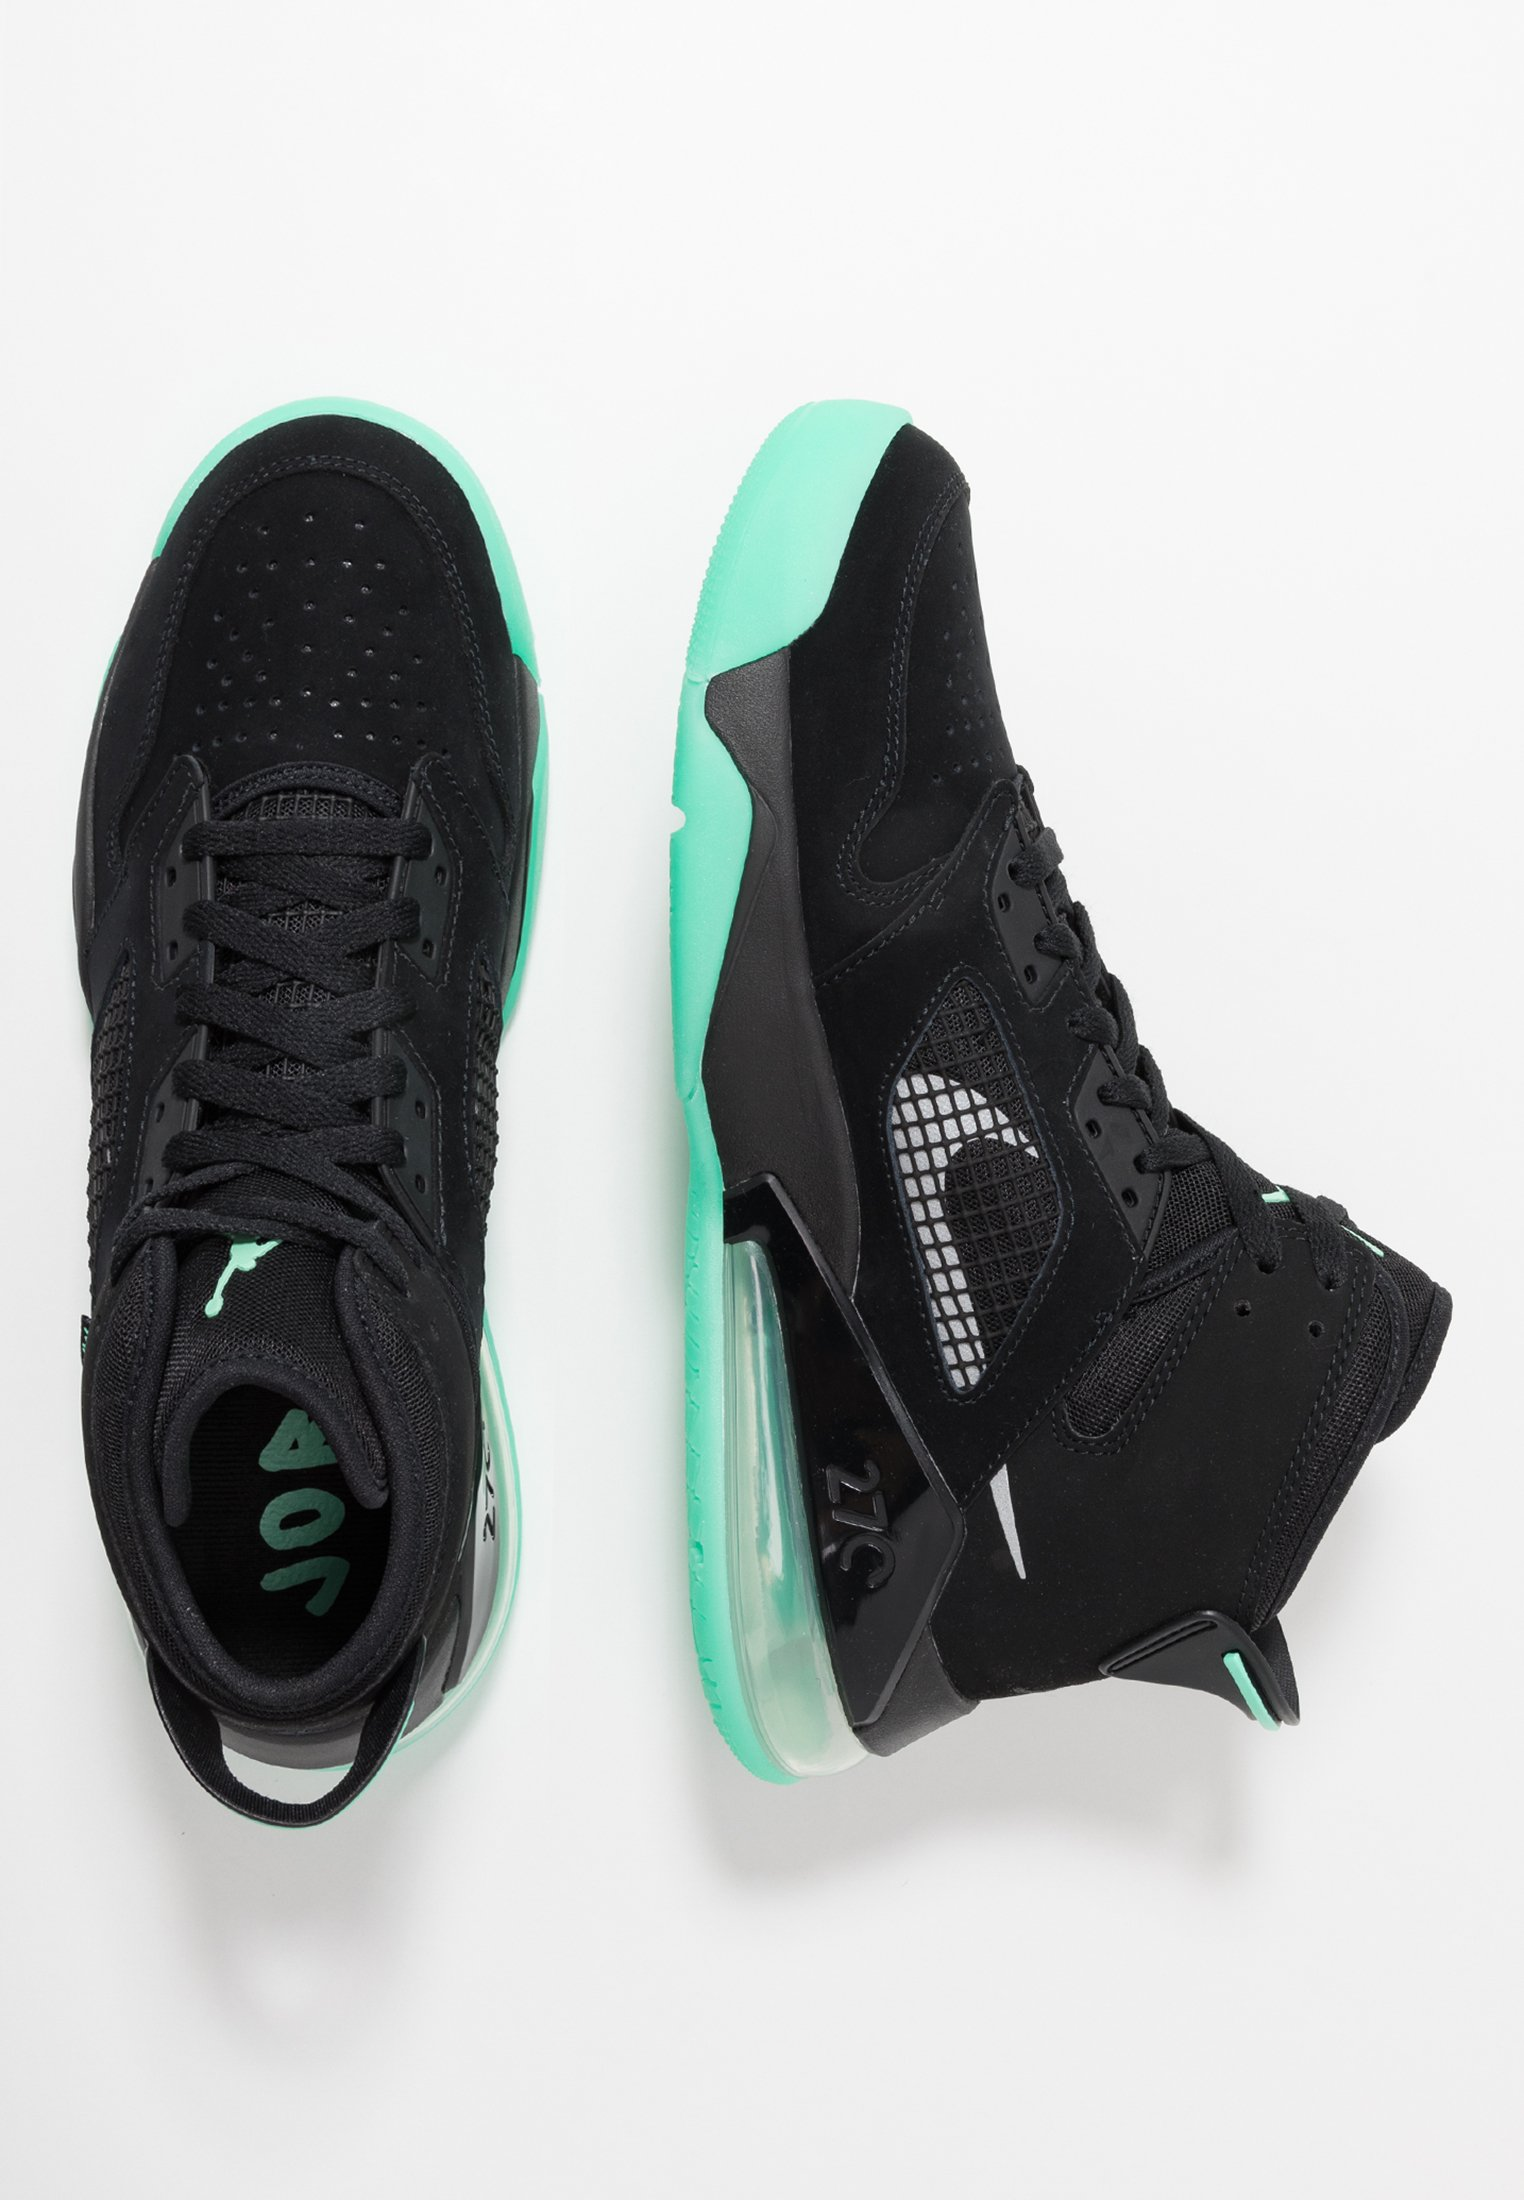 MARS 270 Höga sneakers blackgreen glowgreen glow